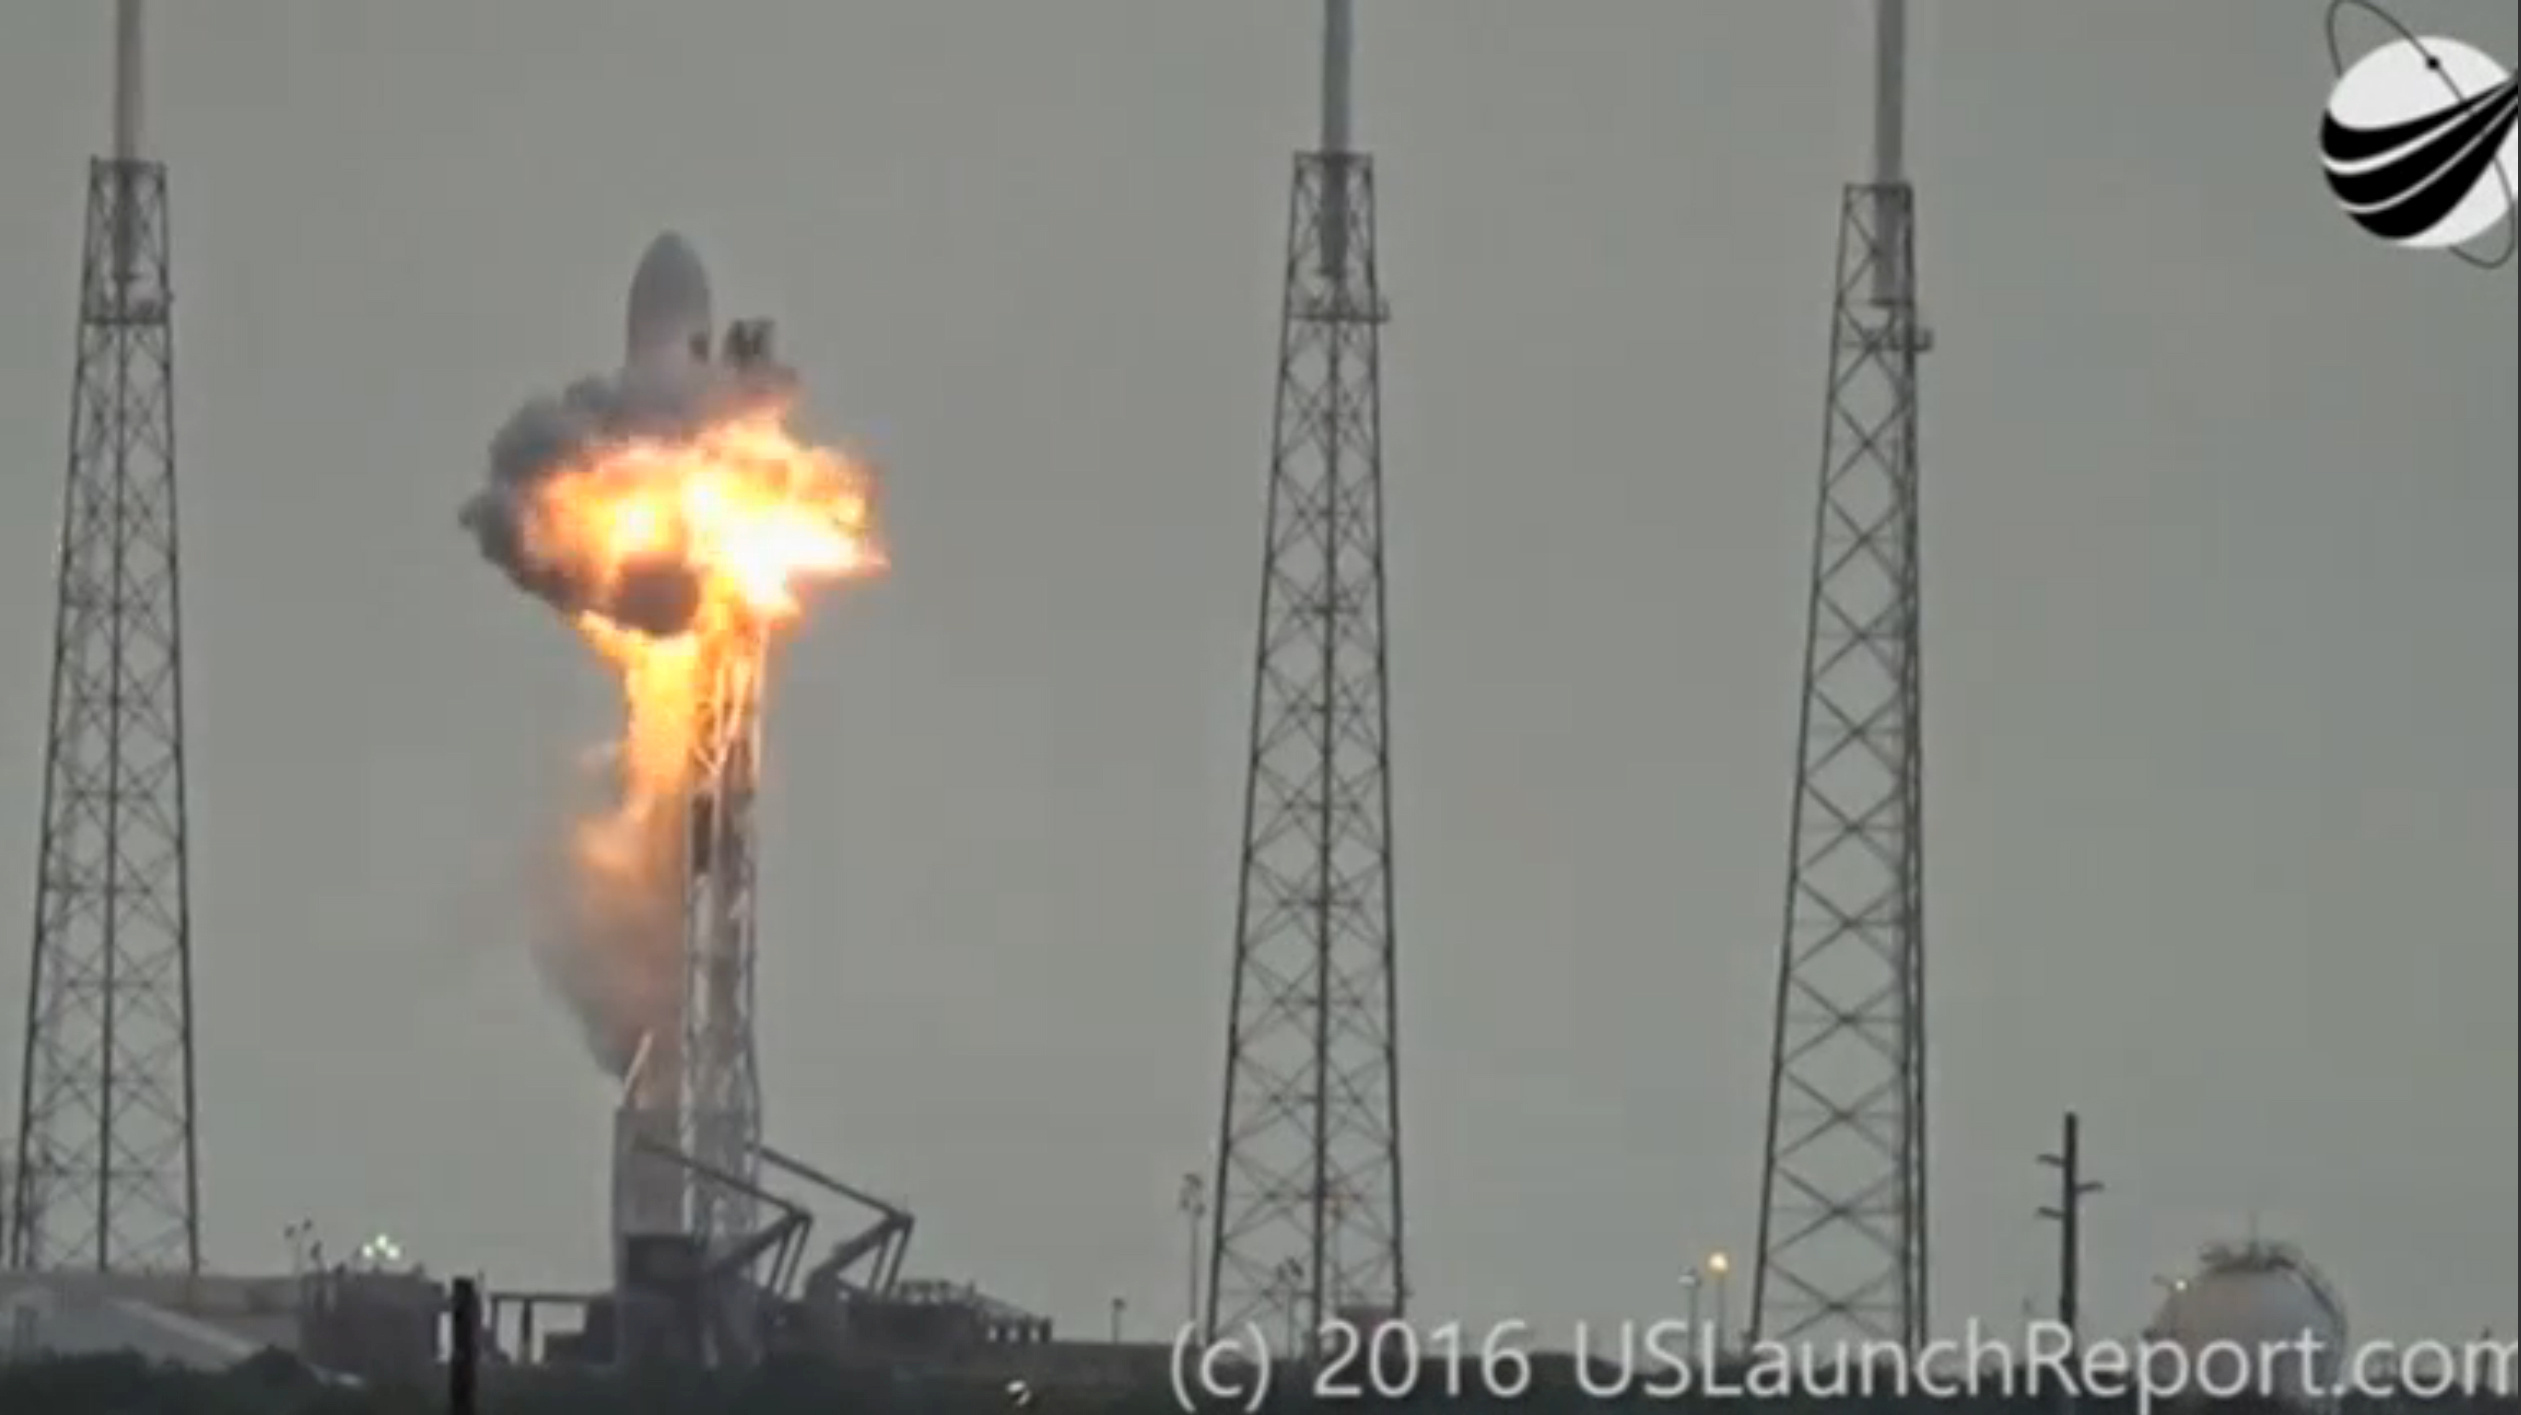 File photo of an explosion on the launch site of a SpaceX Falcon 9 rocket is shown in this still image from video in Cape Canaveral